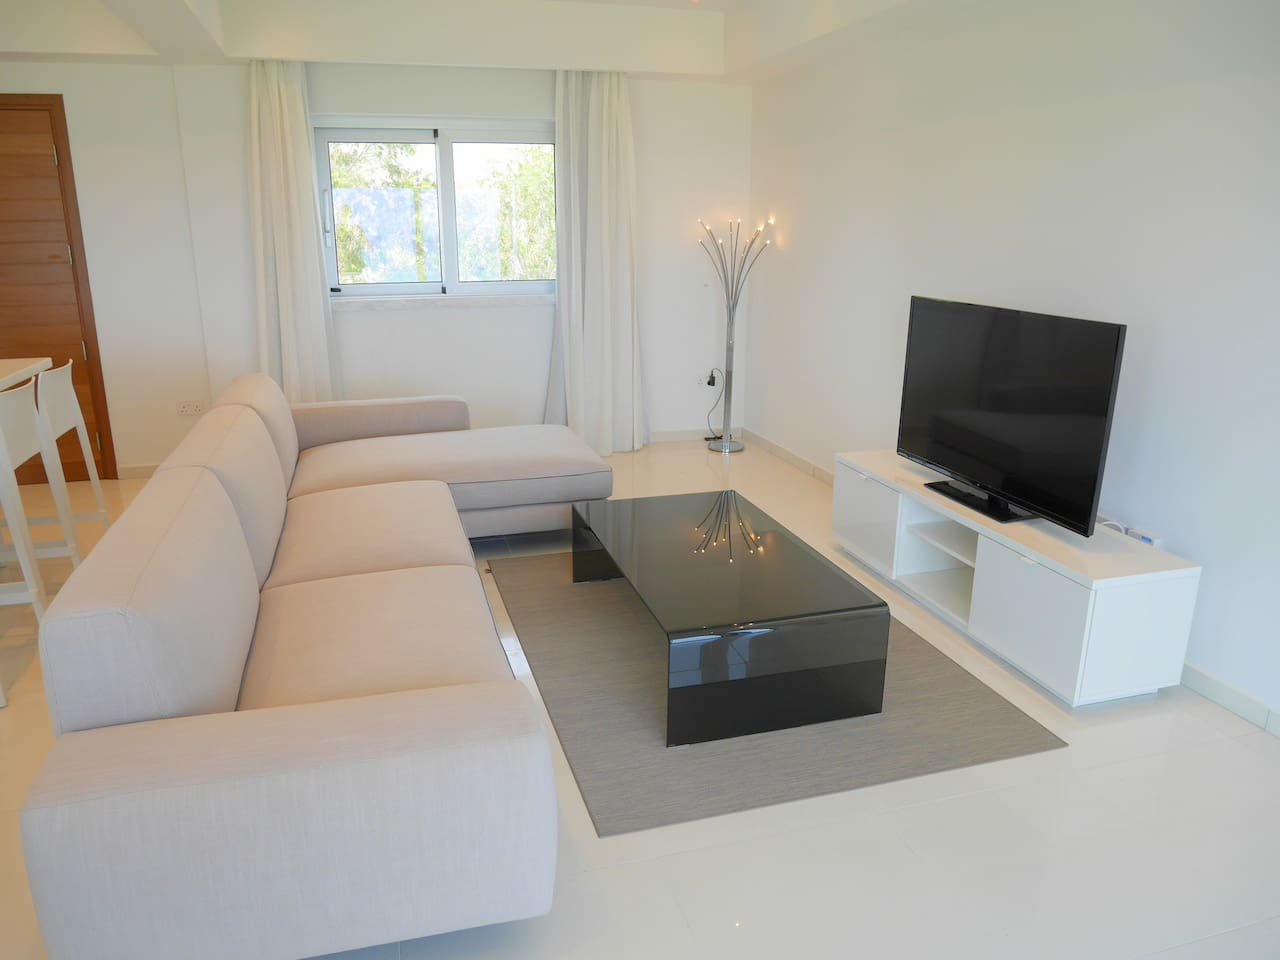 Apartment 2 Bed Luxury Apt with Large Communal Pool - B2-101 photo 19263736